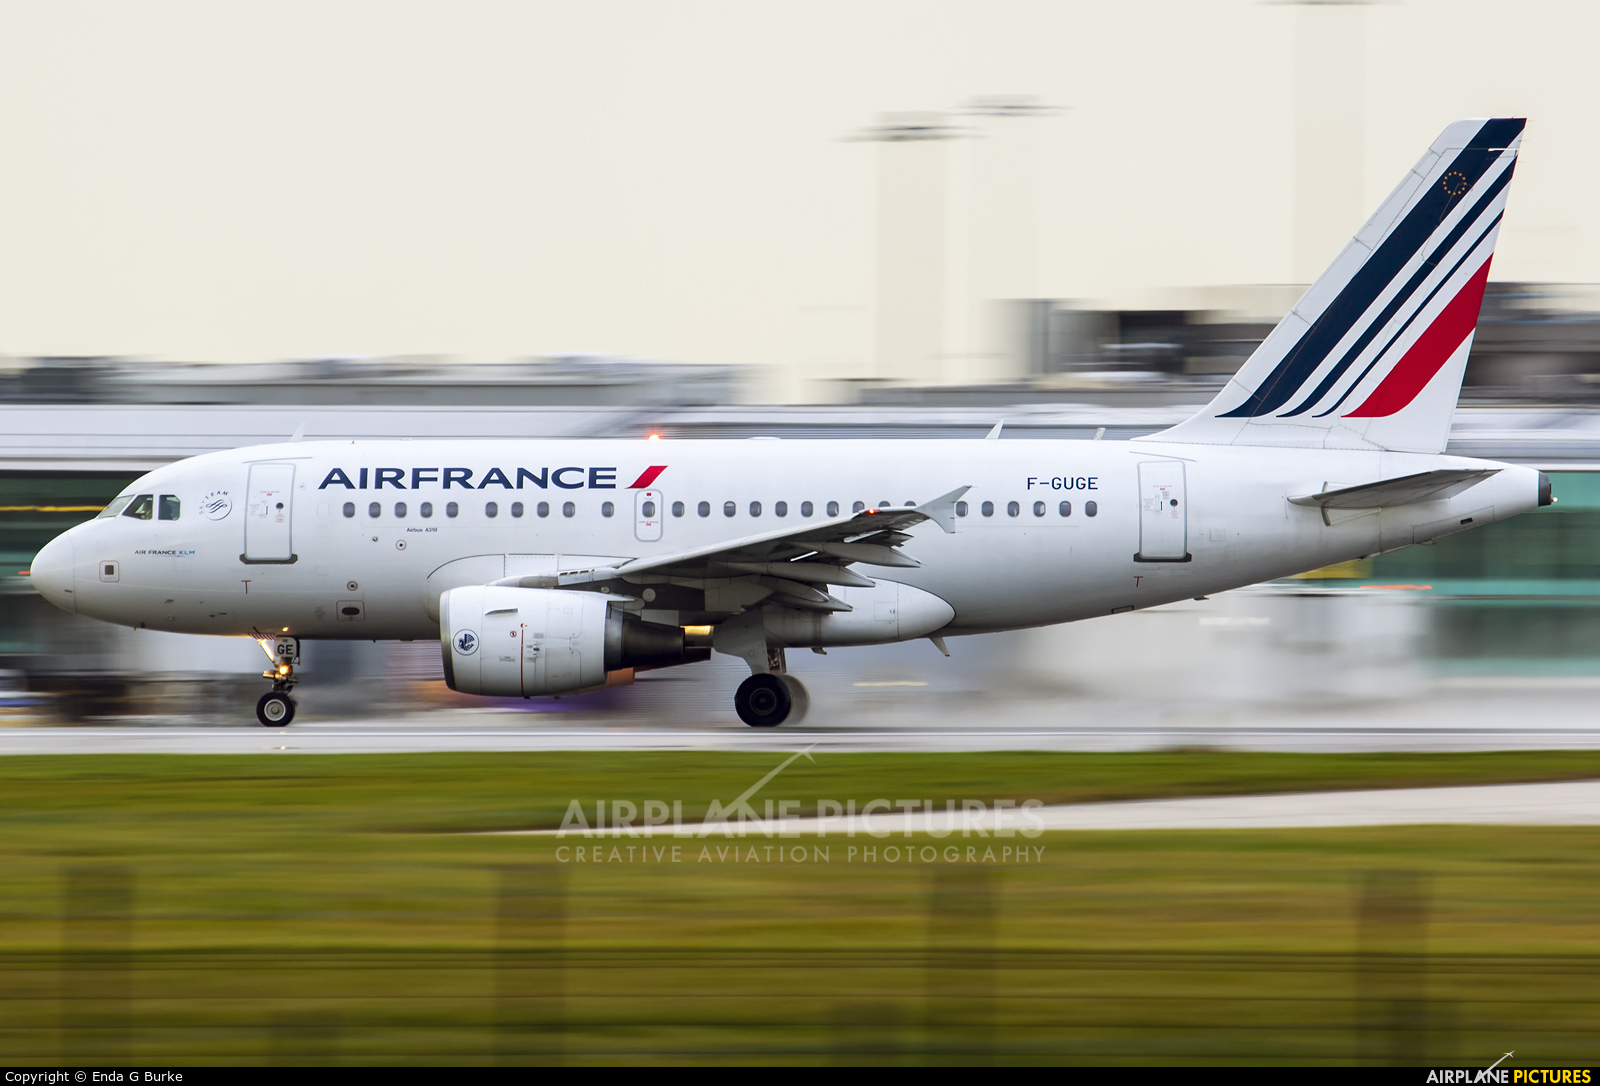 Air France F-GUGE aircraft at Manchester